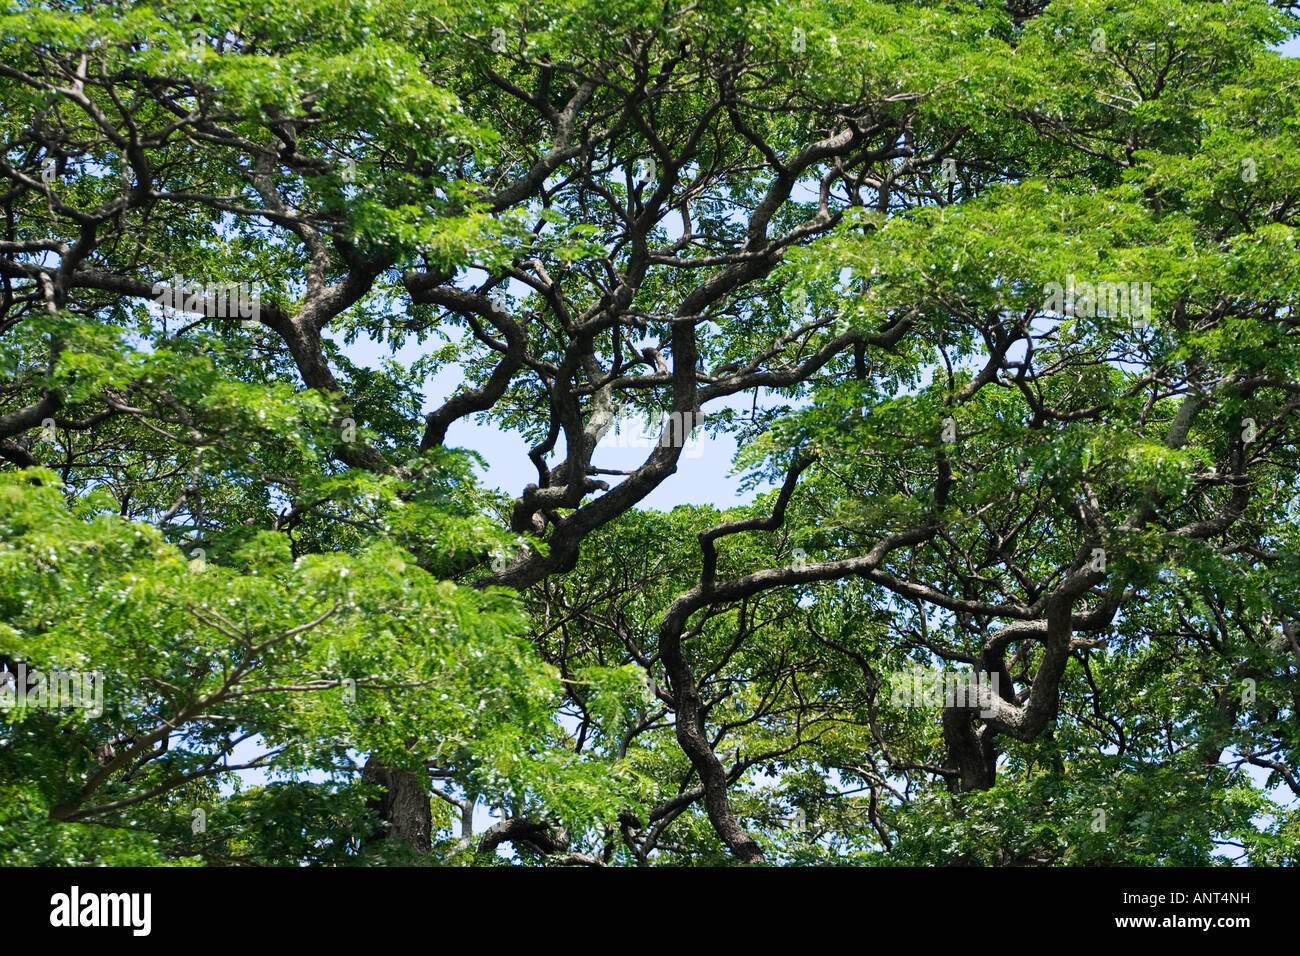 The Leaves And Branches Of An Acacia Tree Stock Photo 15593788 Alamy